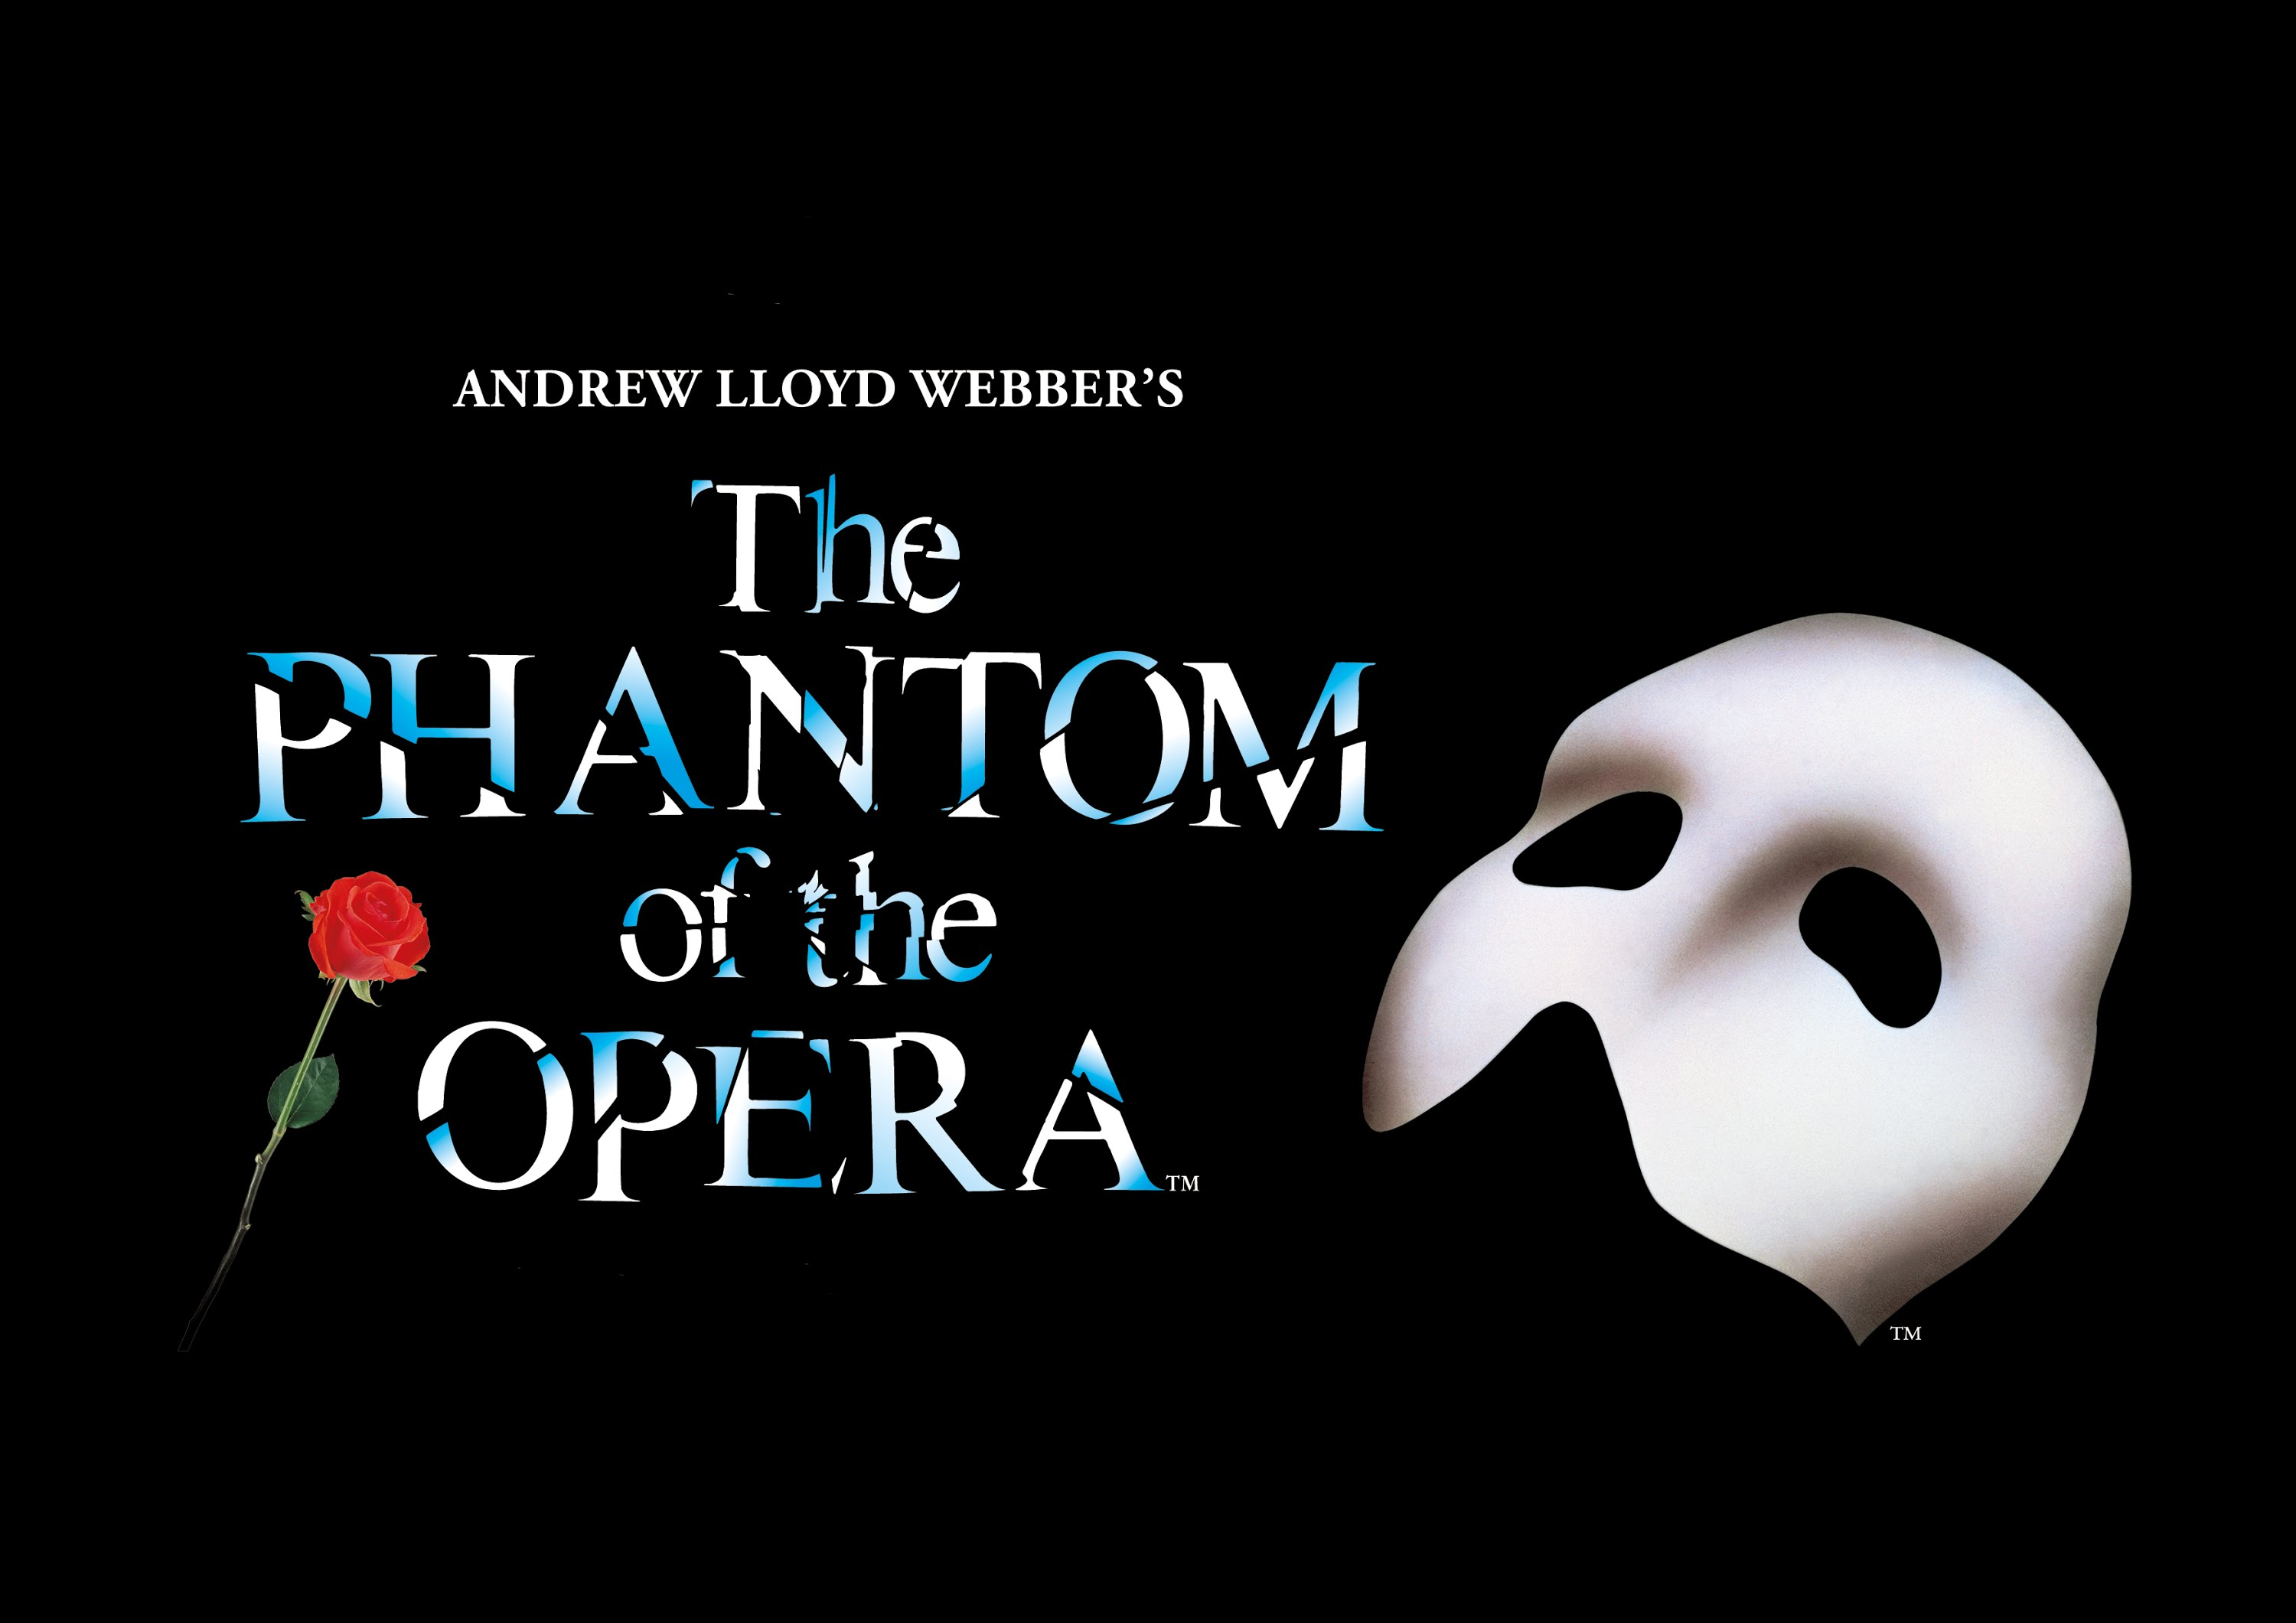 「The Phantom of the Opera」の画像検索結果